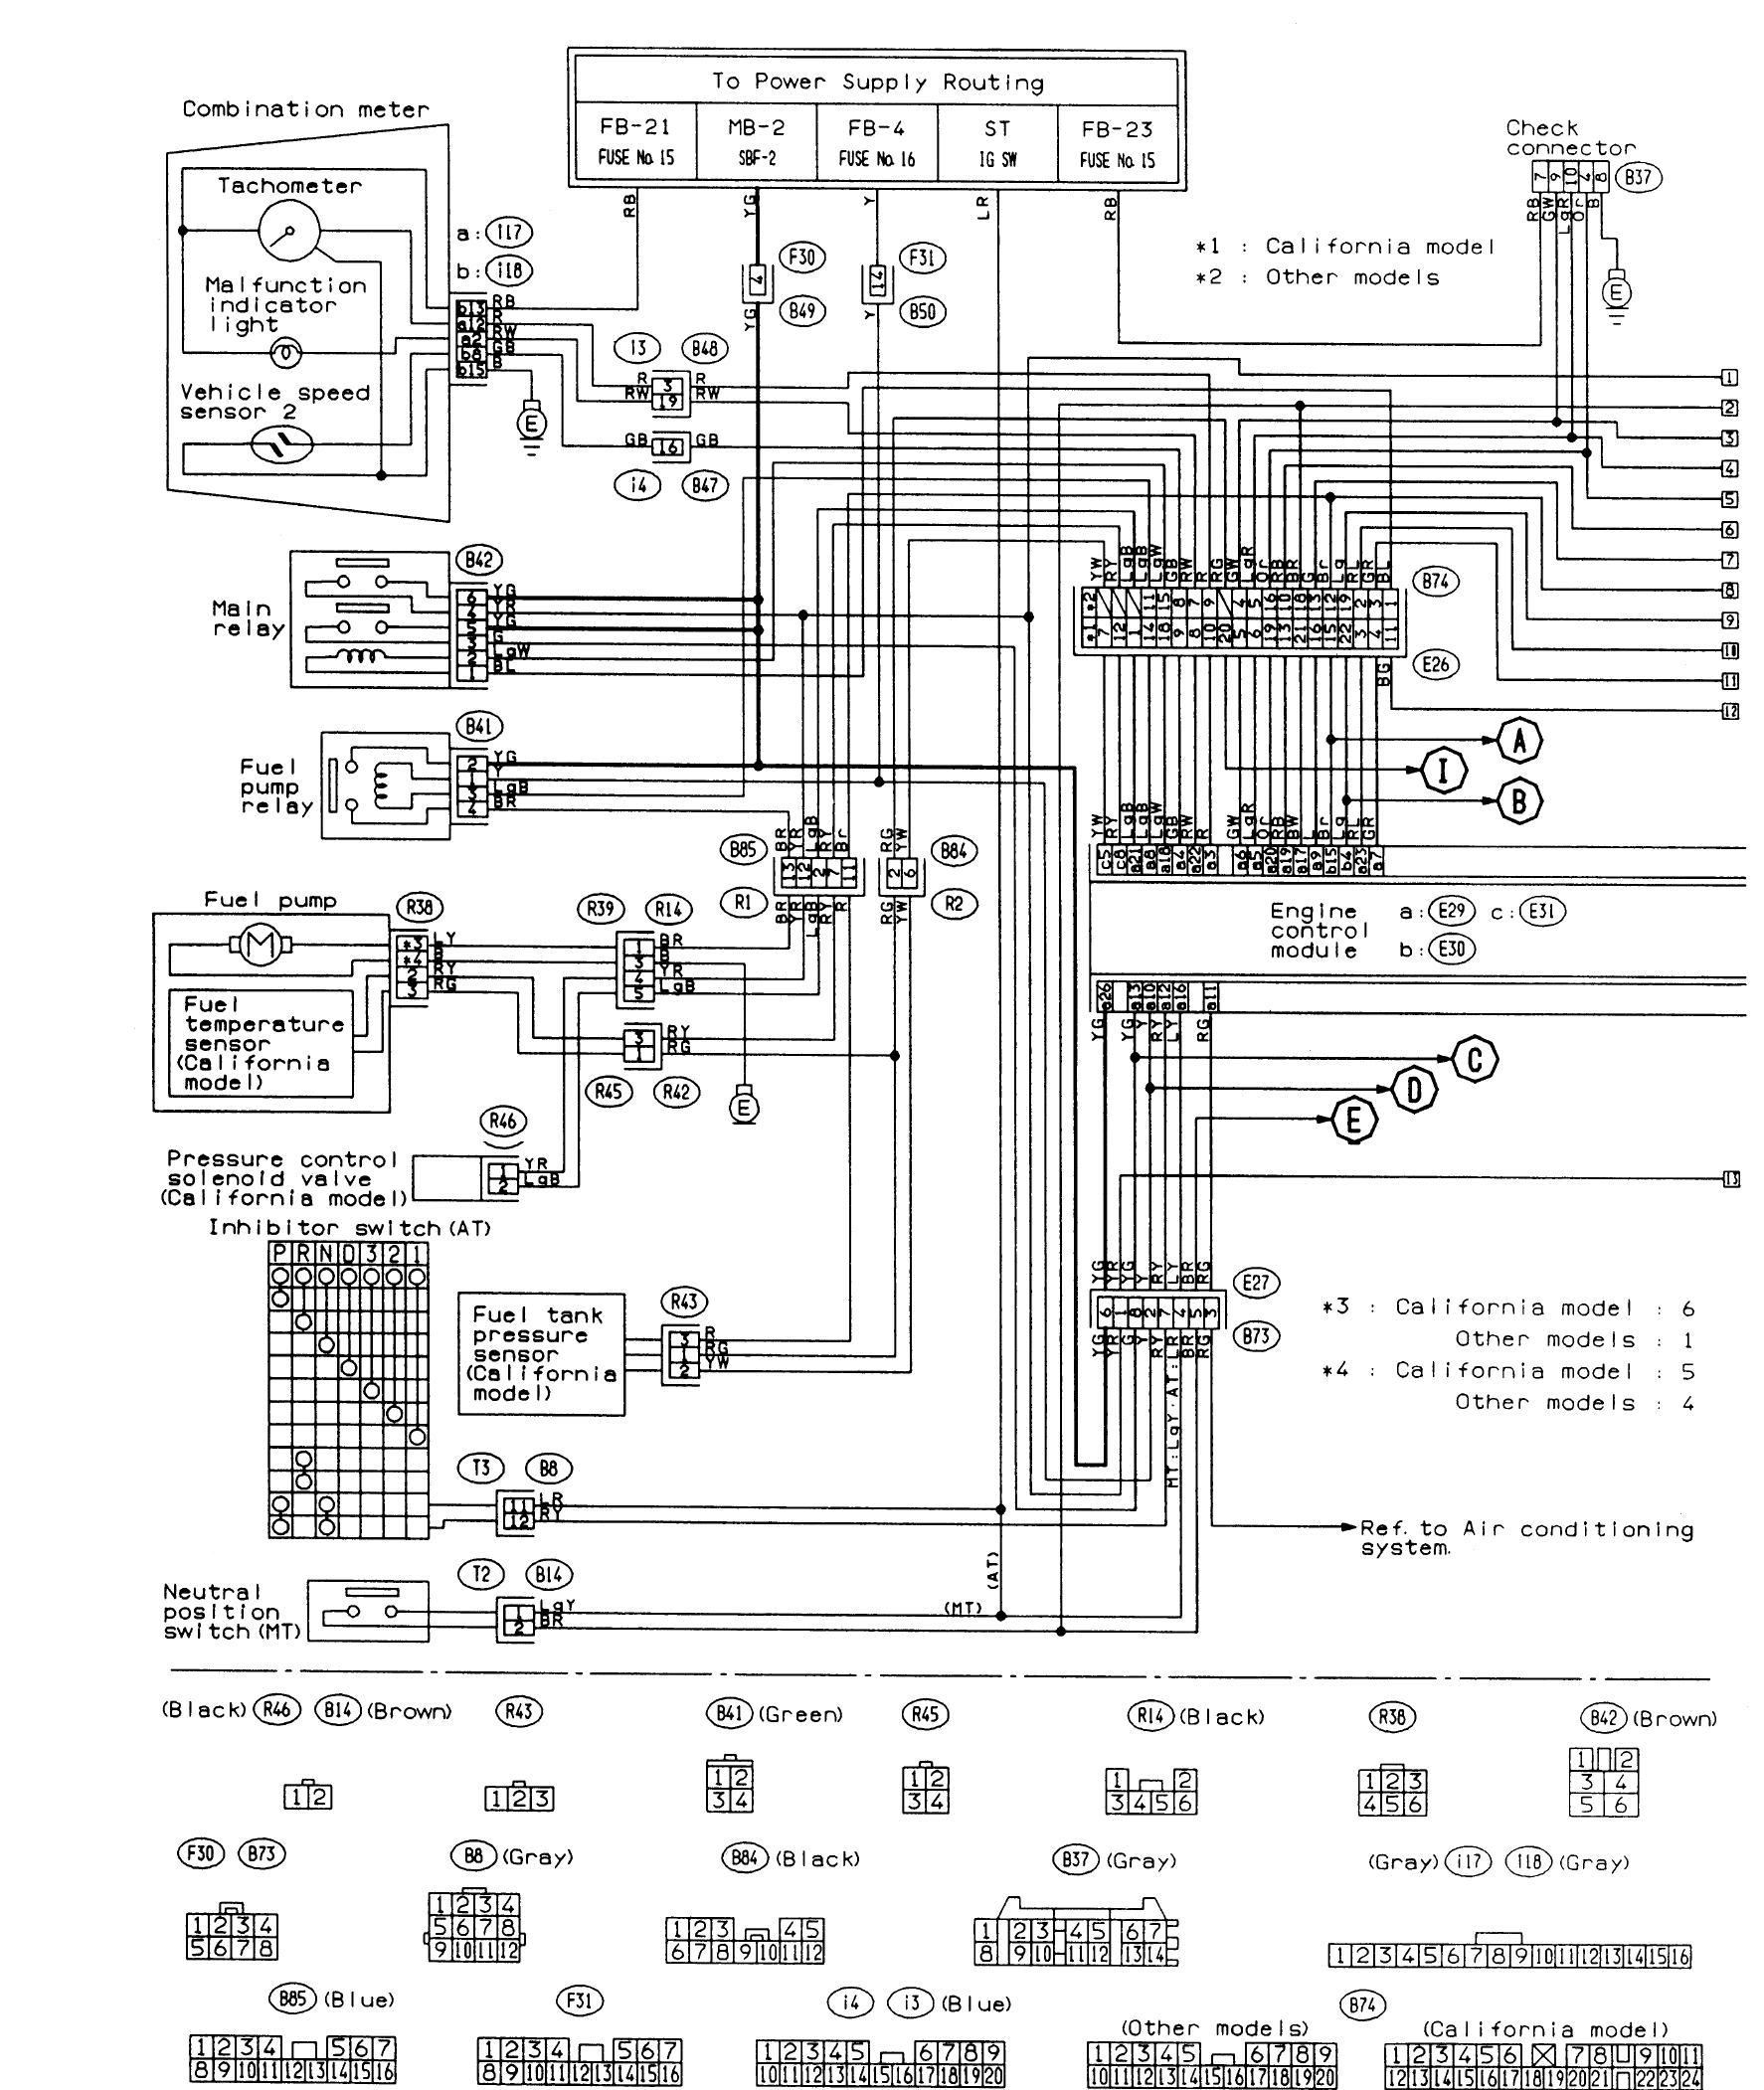 subaru ecu wiring diagram FUSlrCX wiring diagram subaru wiring diagrams instruction Subaru Forester Radio Wiring Diagram at nearapp.co